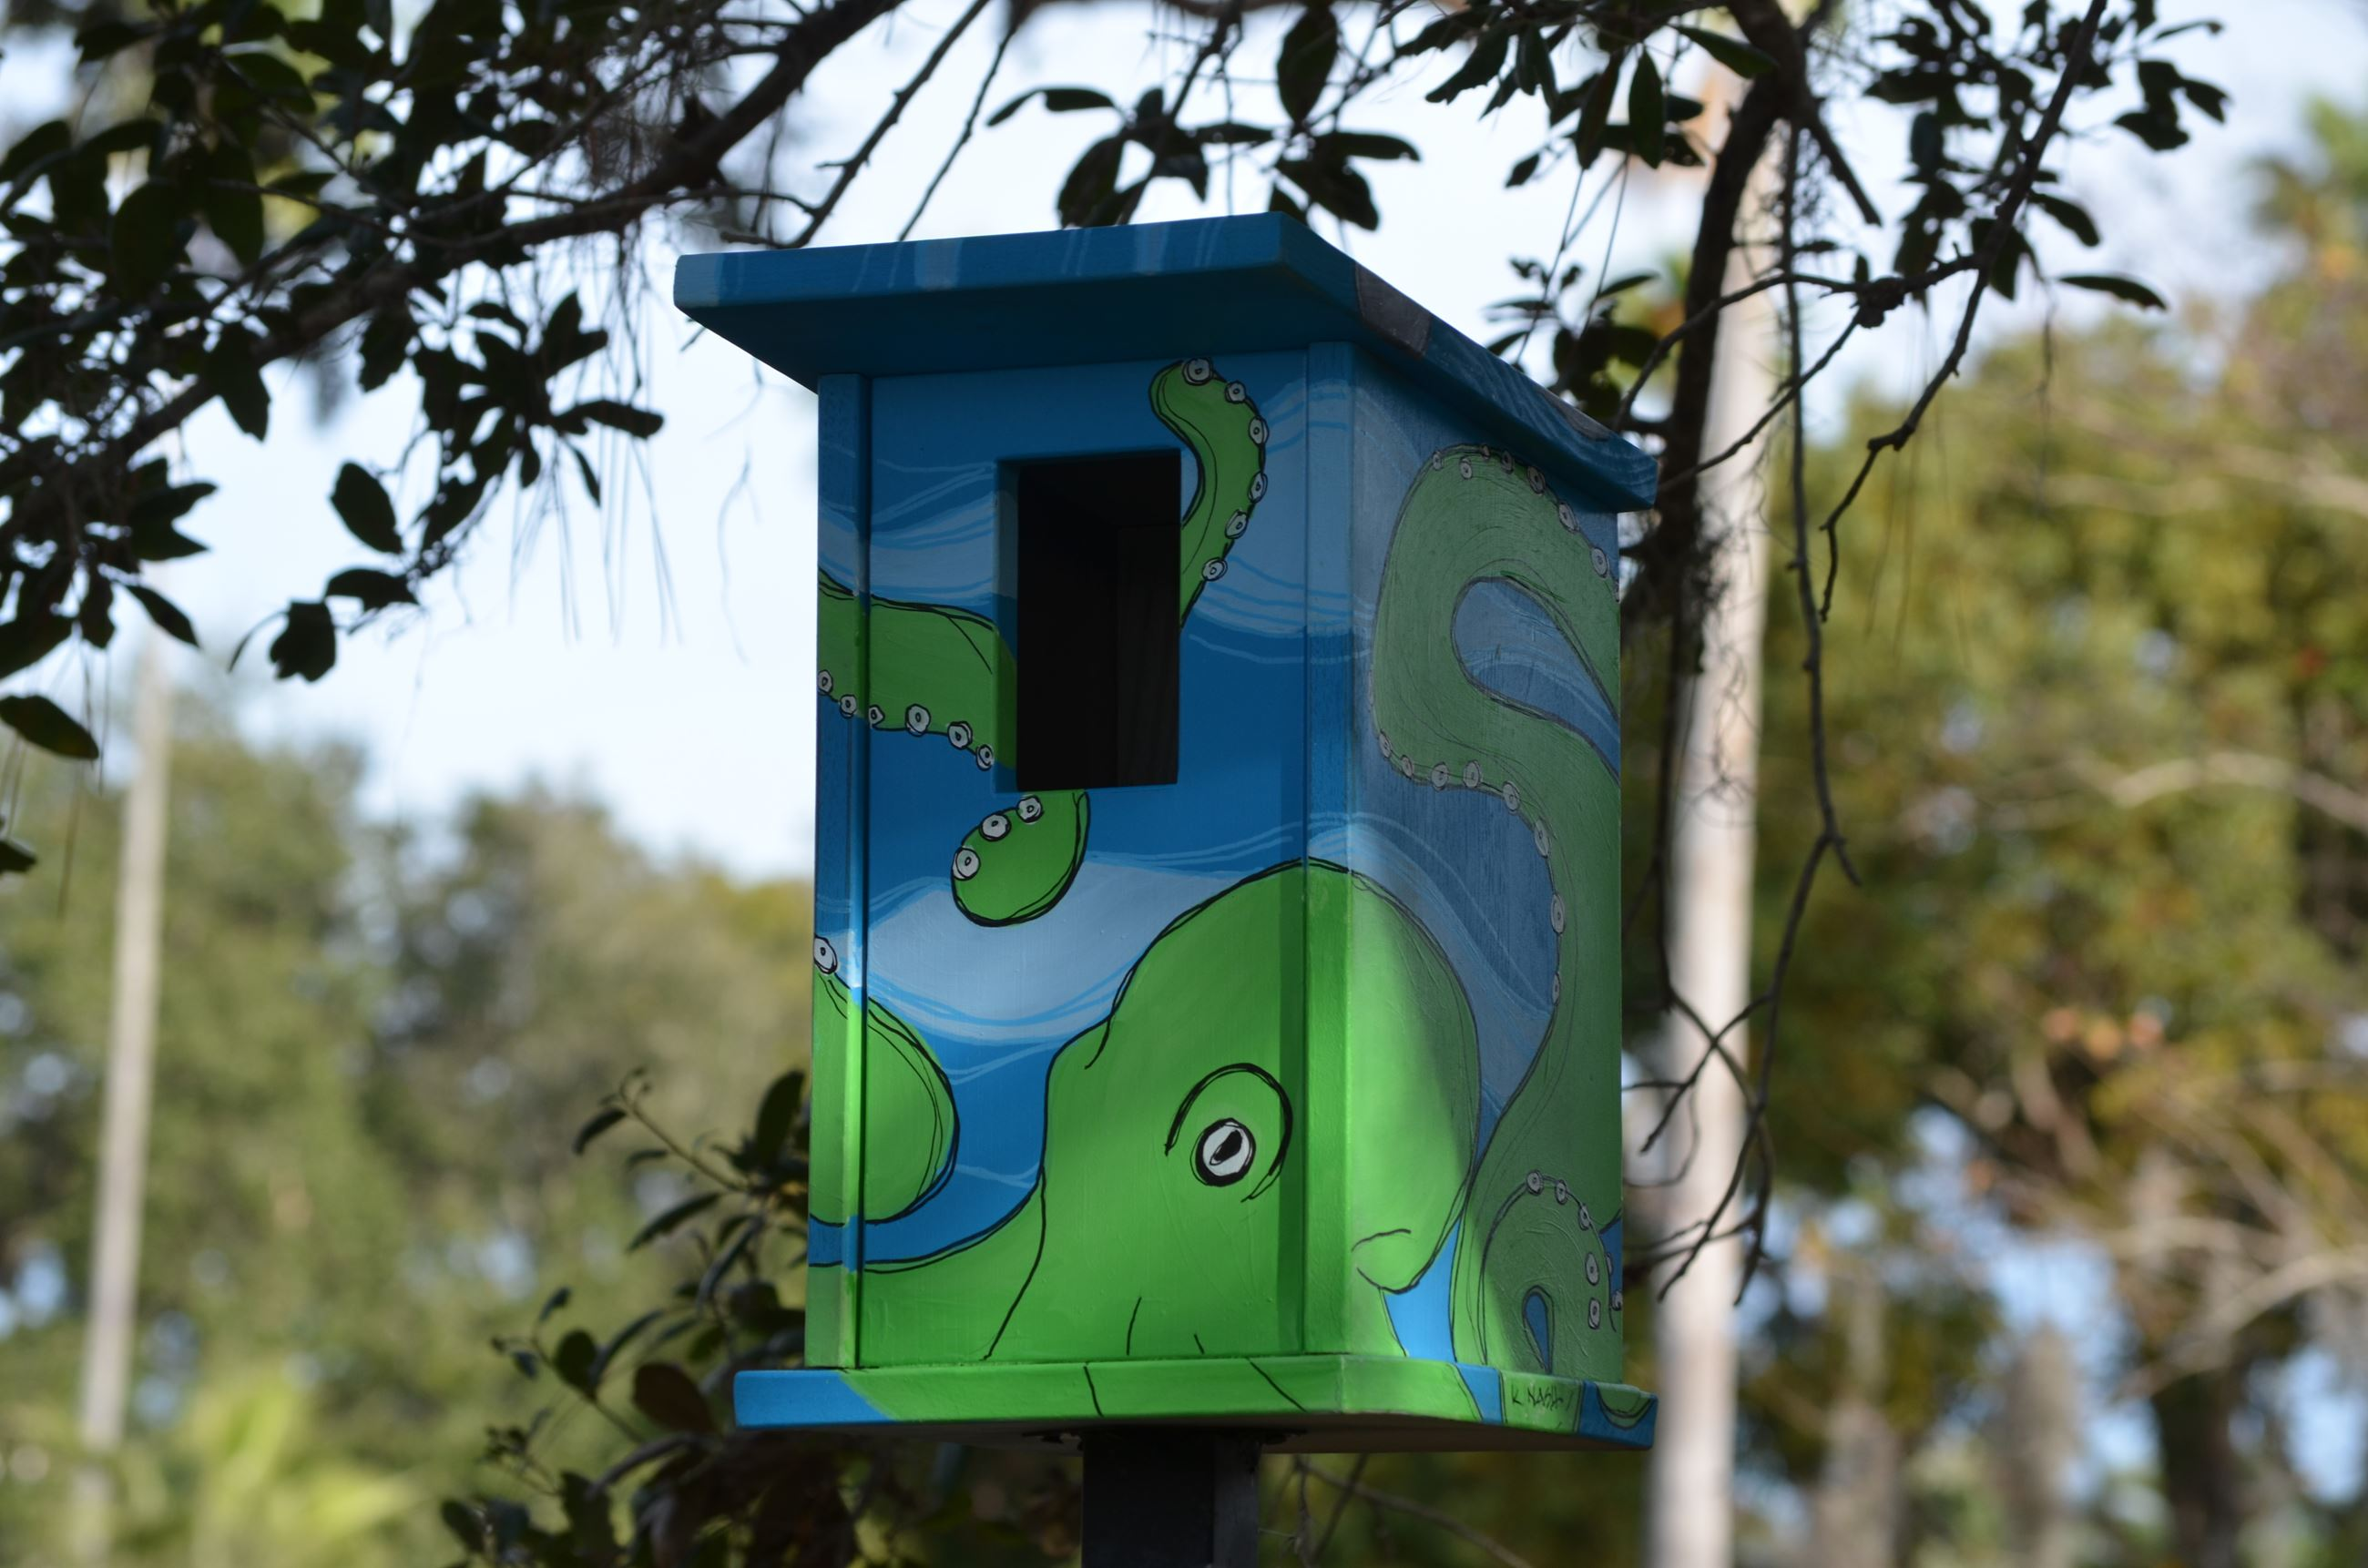 A hand-painted blue birdhouse in Doyle/Wall Park that has a green octopus on it